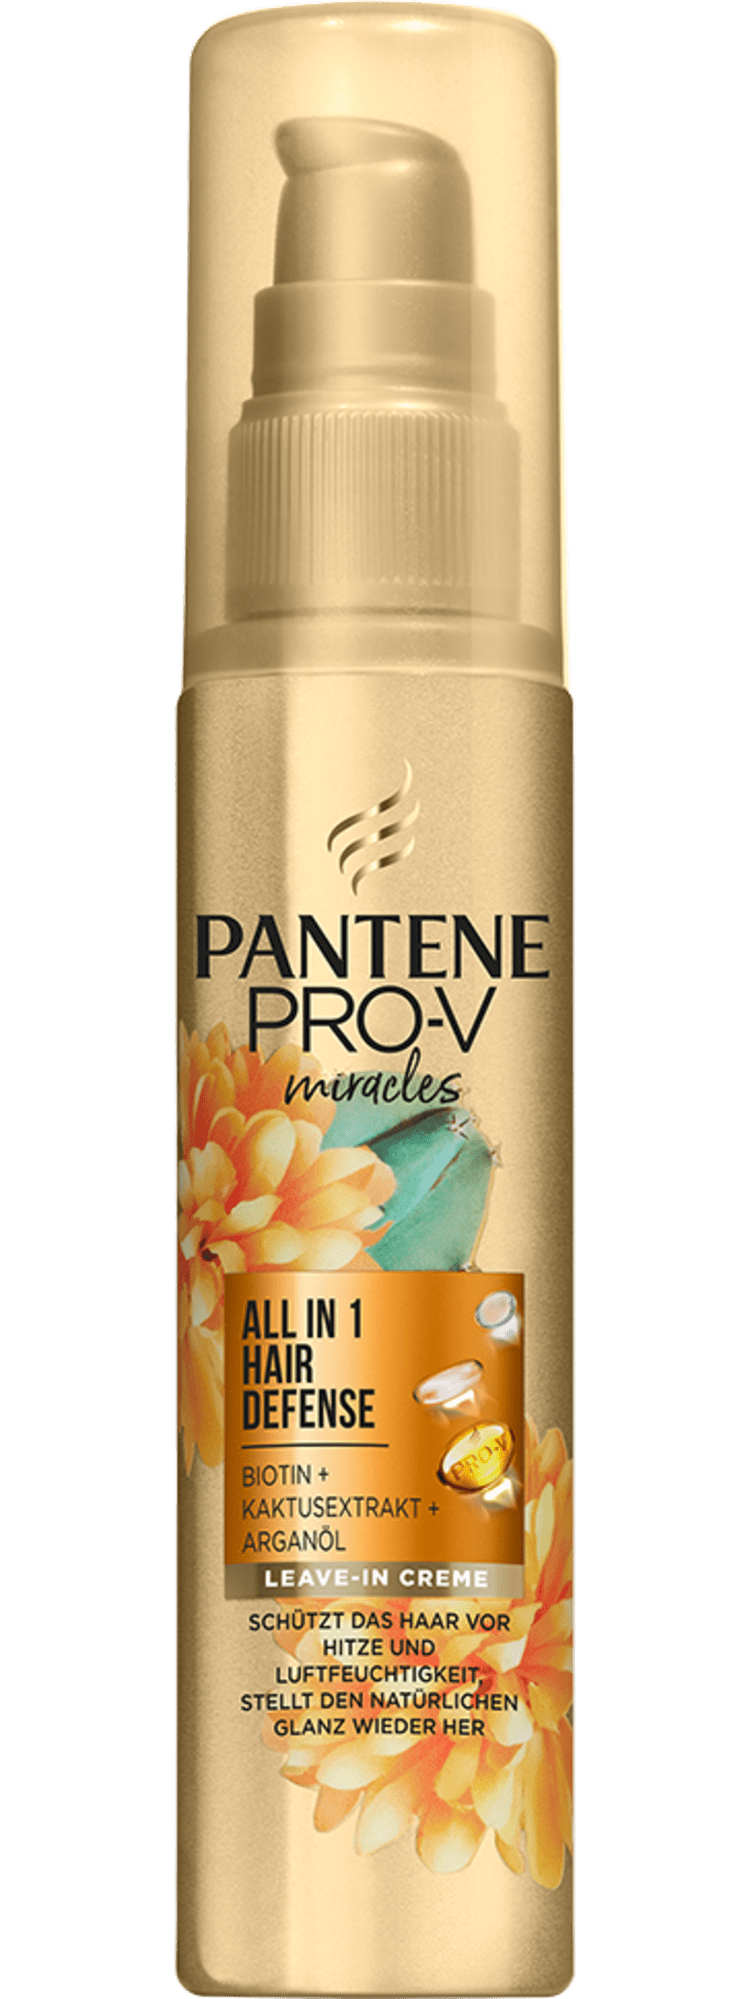 Pro-V Miracles All In 1 Hair Defense Leave-in Creme